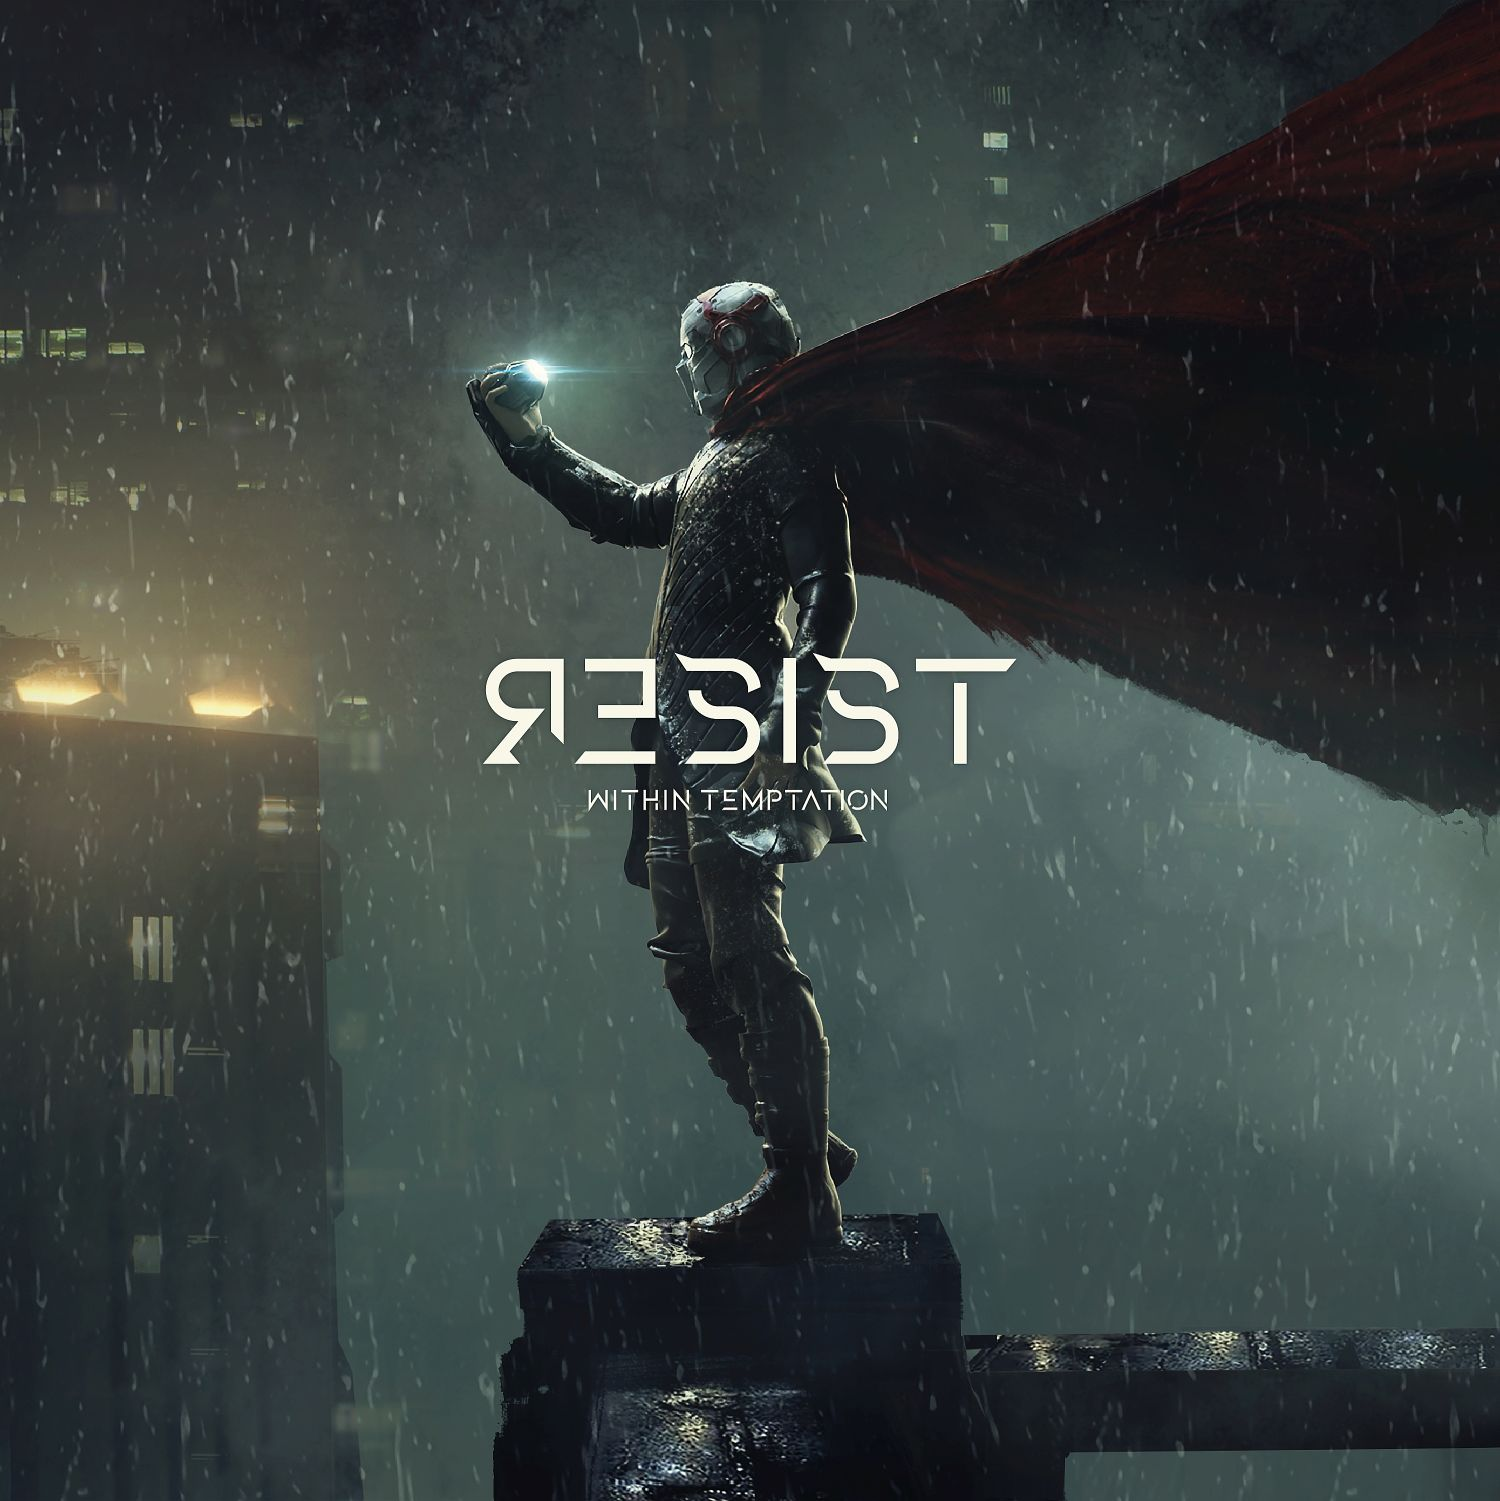 Within Temptation_cover album_Resist